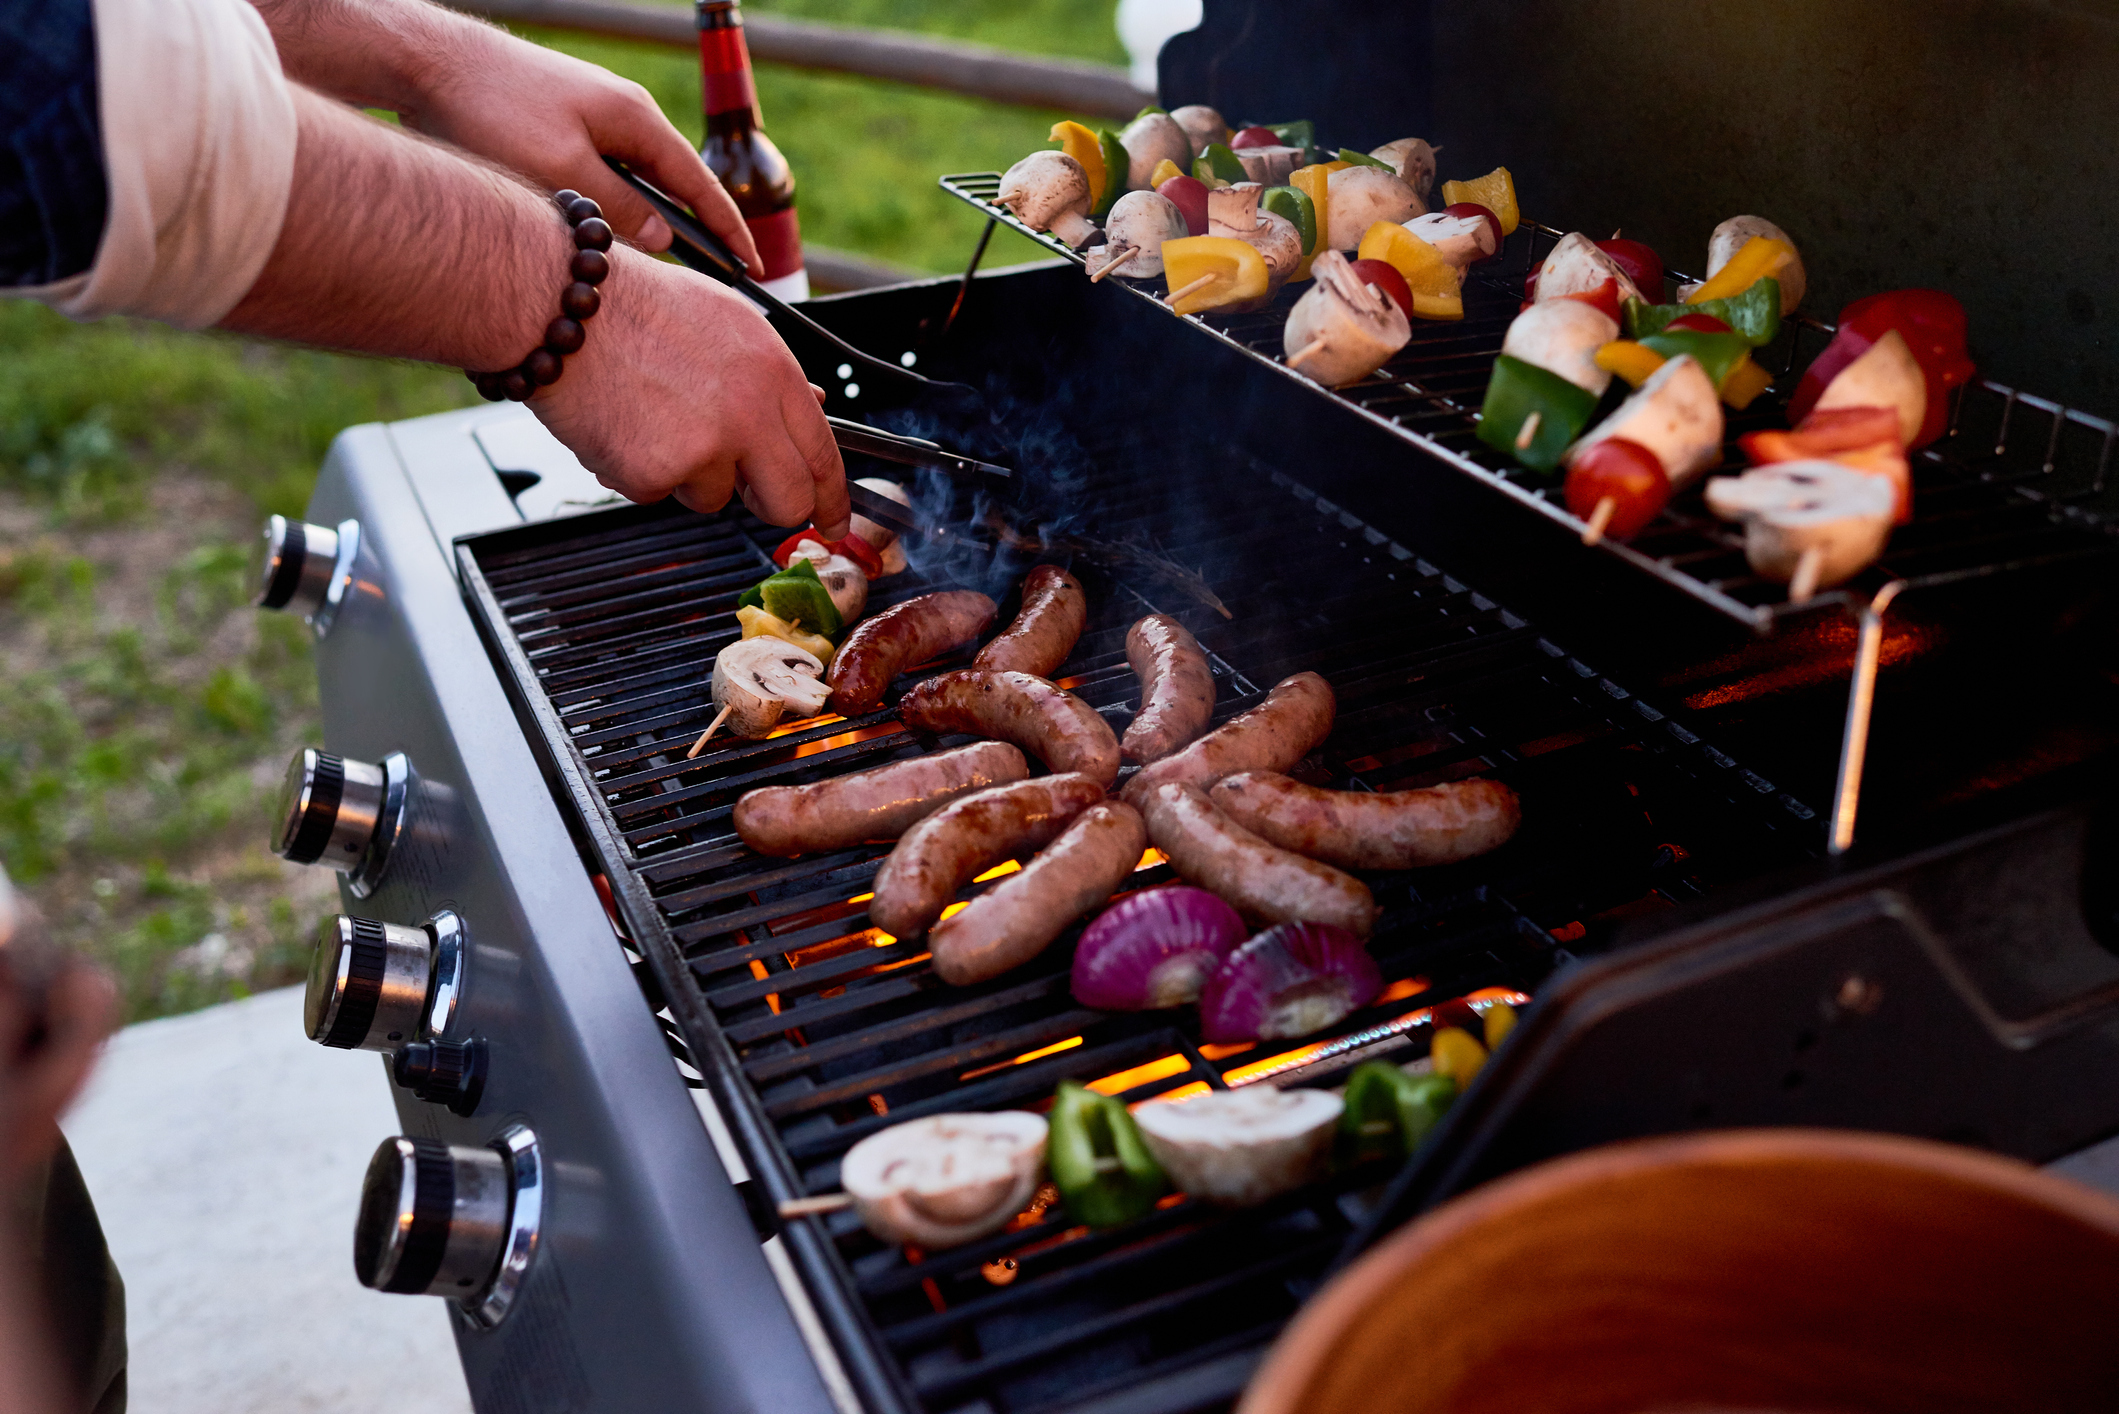 Meats and vegetables cooking on a grill